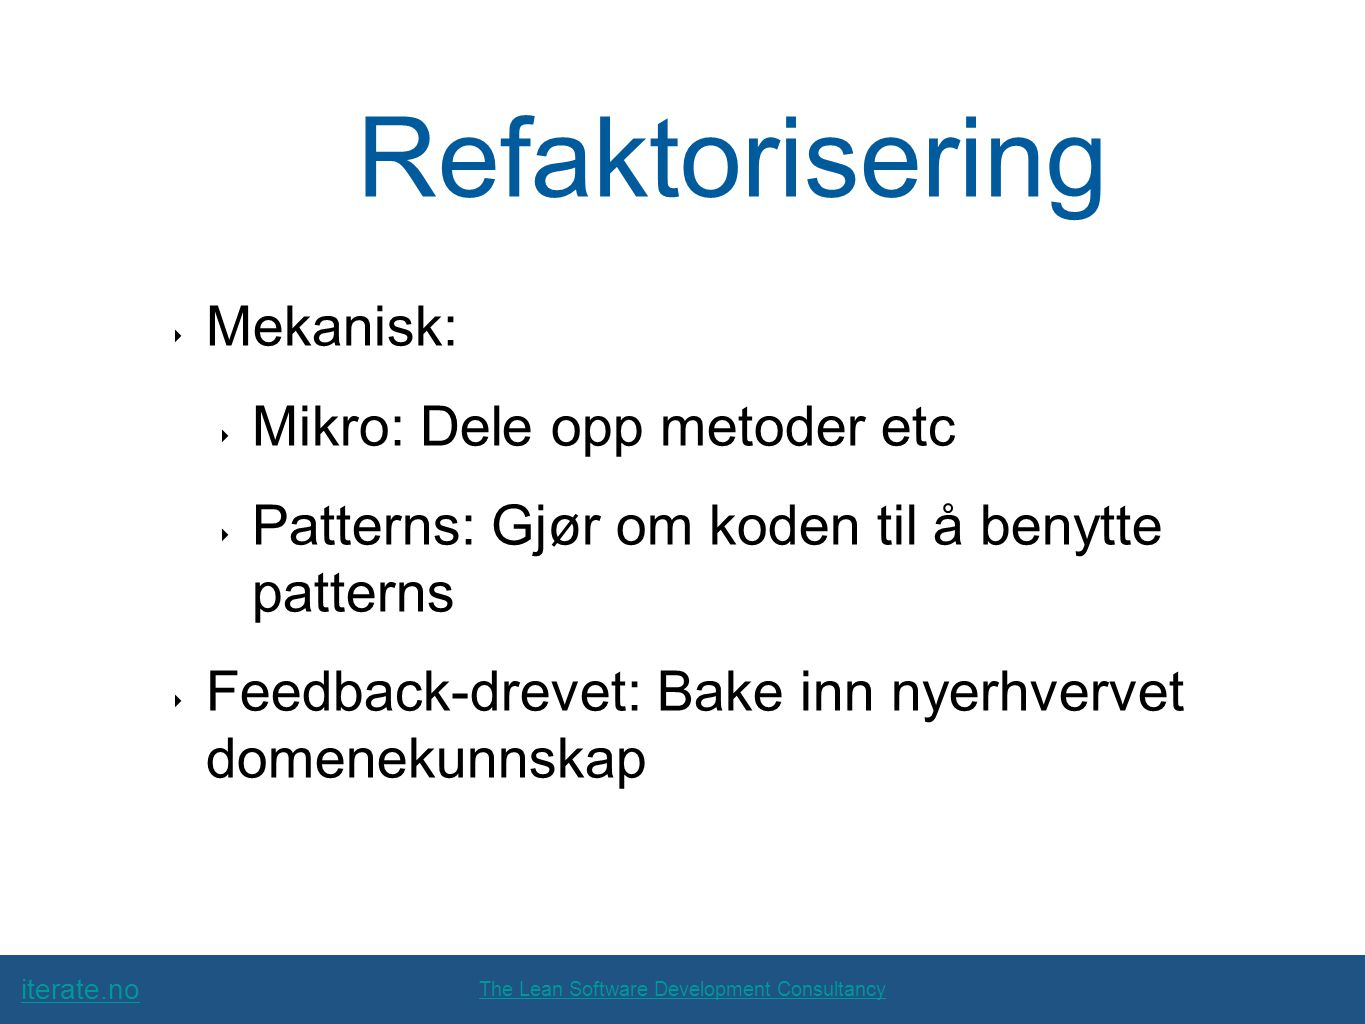 iterate.no The Lean Software Development Consultancy Refaktorisering ‣ Mekanisk: ‣ Mikro: Dele opp metoder etc ‣ Patterns: Gjør om koden til å benytte patterns ‣ Feedback-drevet: Bake inn nyerhvervet domenekunnskap